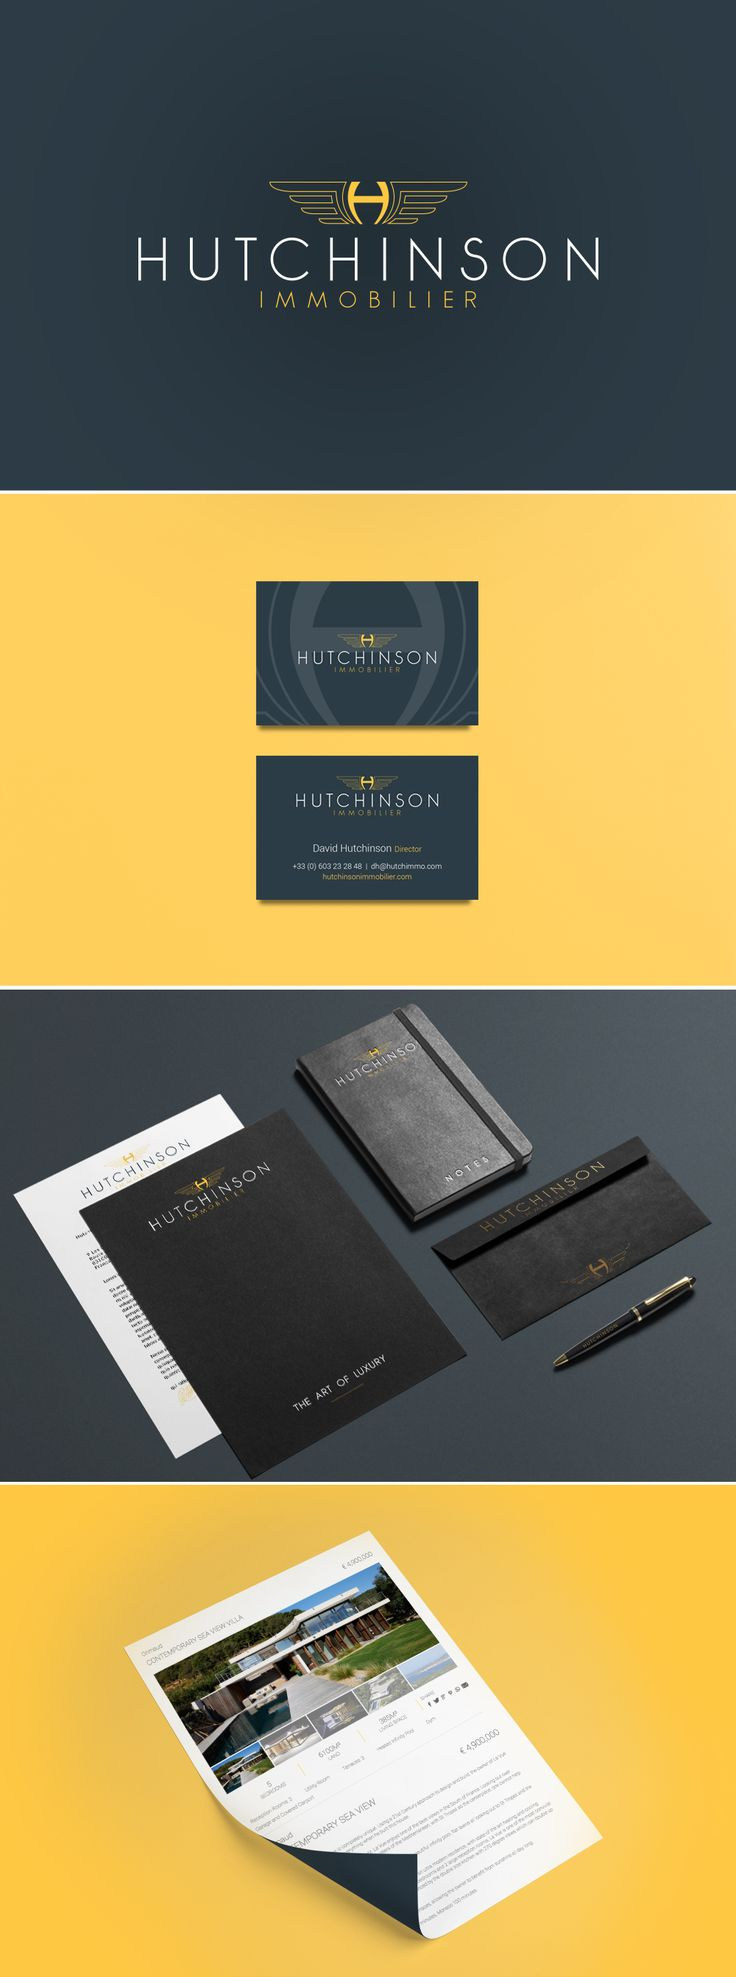 A branding and stationary project that we have designed for an exclusive luxury real estate agents in St Tropez   #Stationary #Branding #BusinessCards #GraphicDesign #Studio